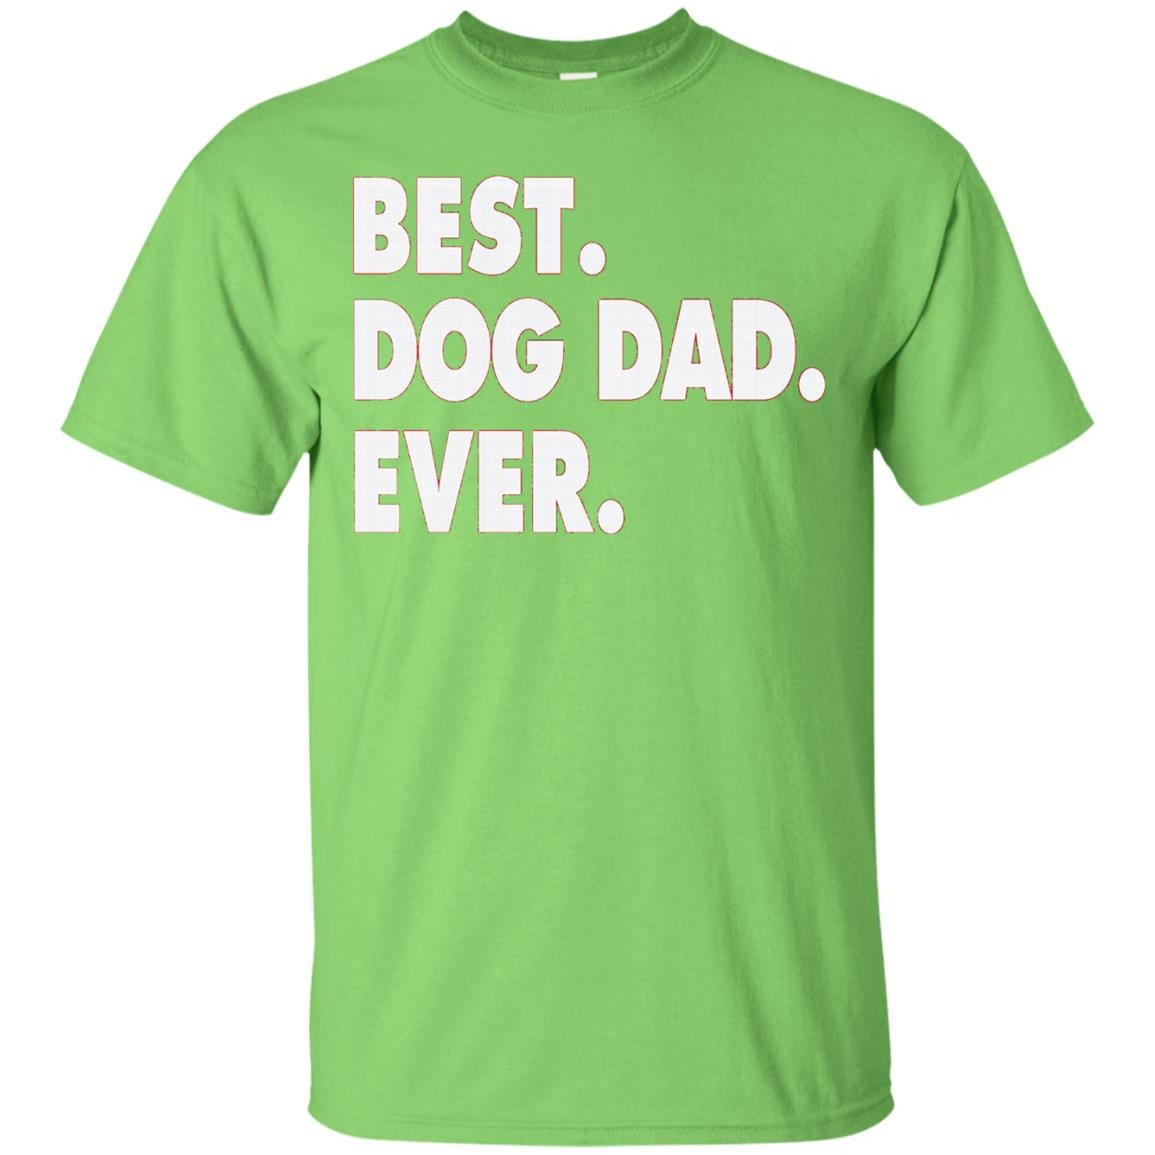 Mens BEST DOG DAD EVER Funny T-Shirt for Birthday Father's Day